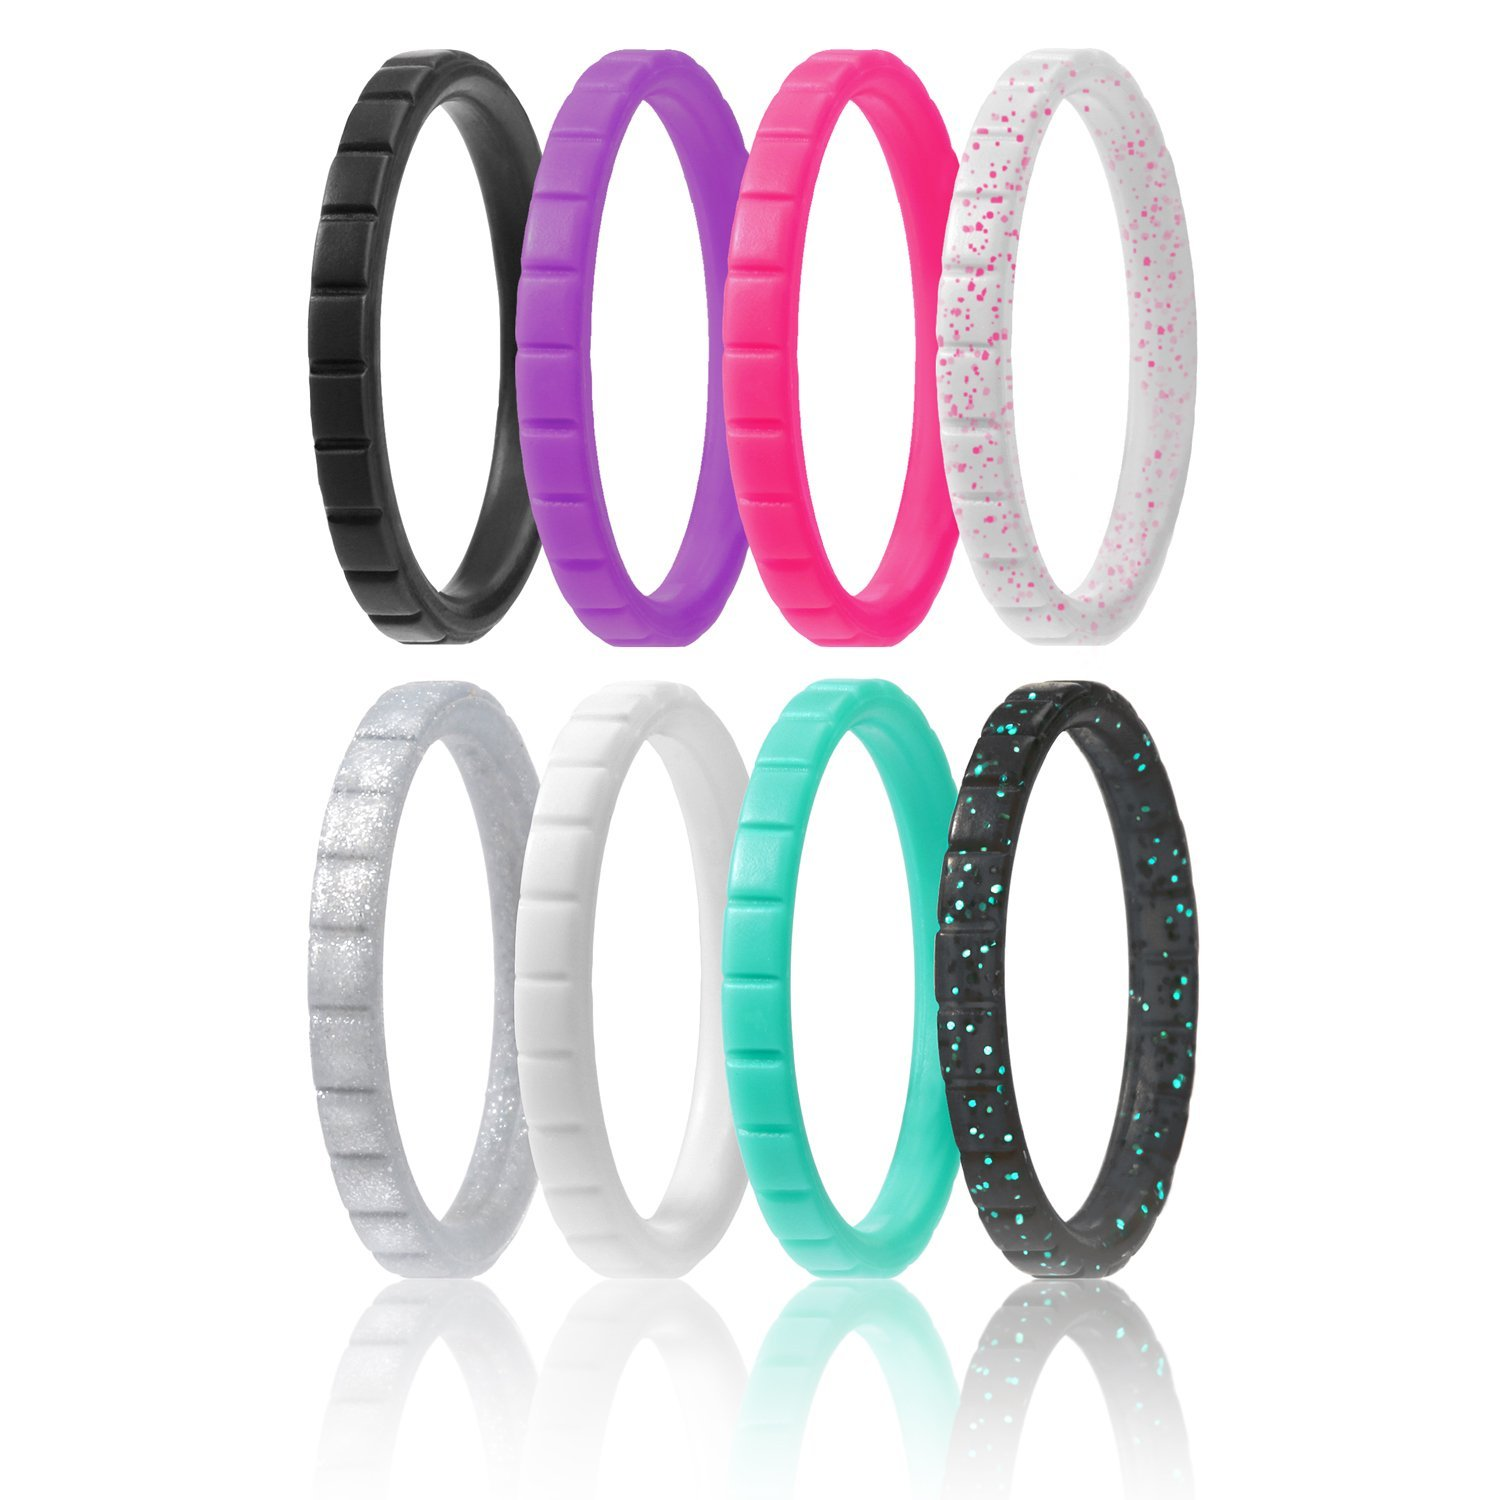 ROQ Silicone Wedding Ring For Women, Set of 8 Thin Stackable Silicone Rubber Wedding Bands - Turquoise, Pink, Purple, Black, White, Silver, Black/Turquoise Glitter, White/Pink Glitter - Size 5